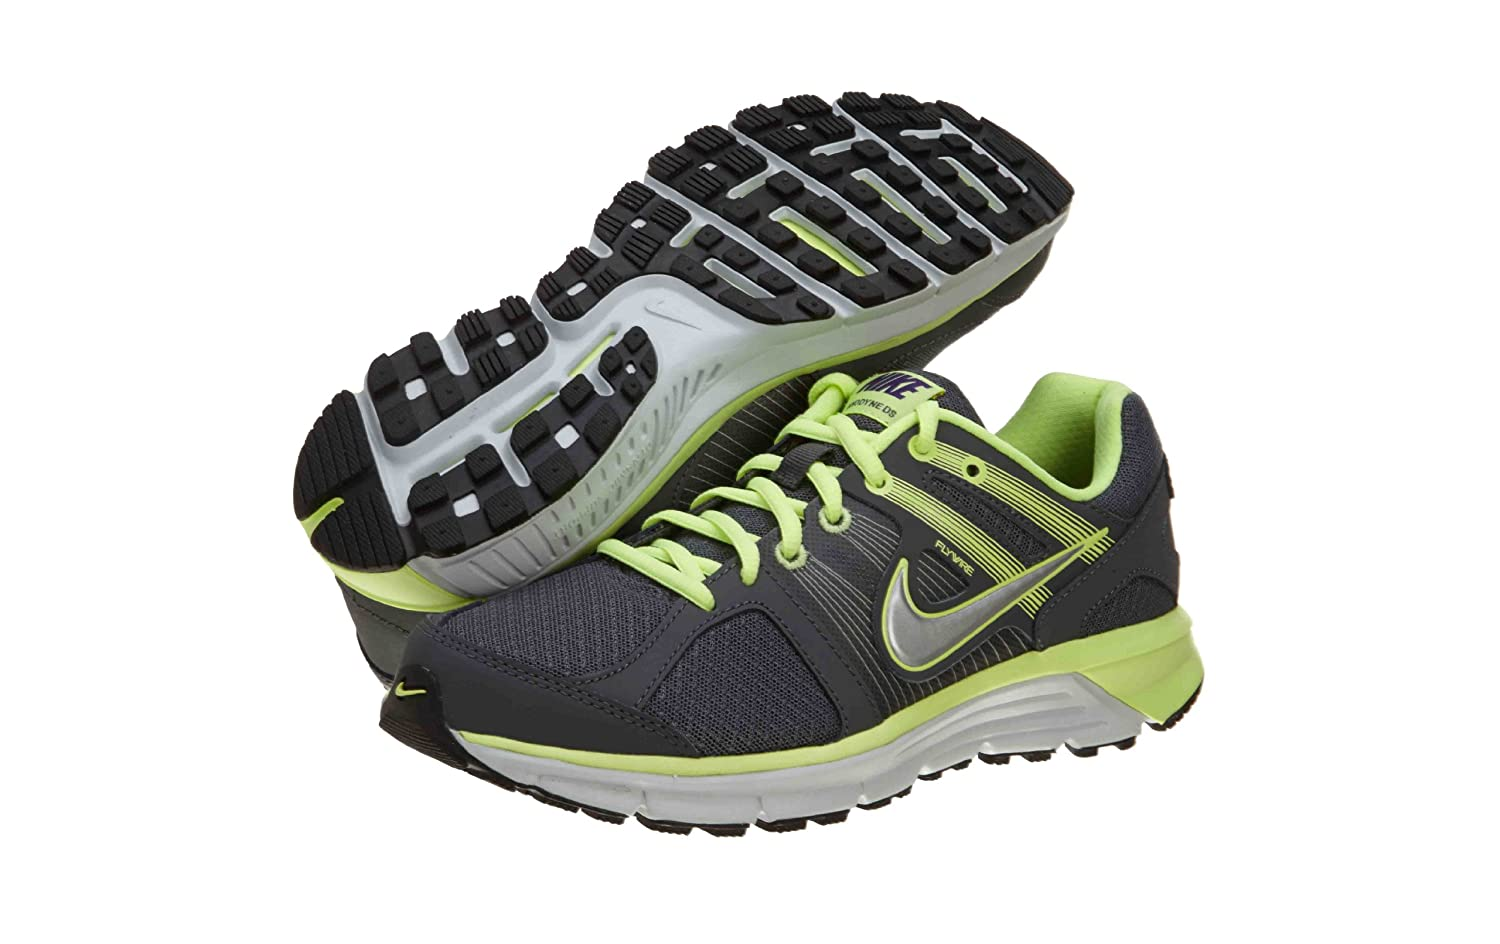 NIKE ' Revolution 3 (GS) Running Shoes B075NMXNTB 7 M US Big Kid|Volt/White/Barely Volt